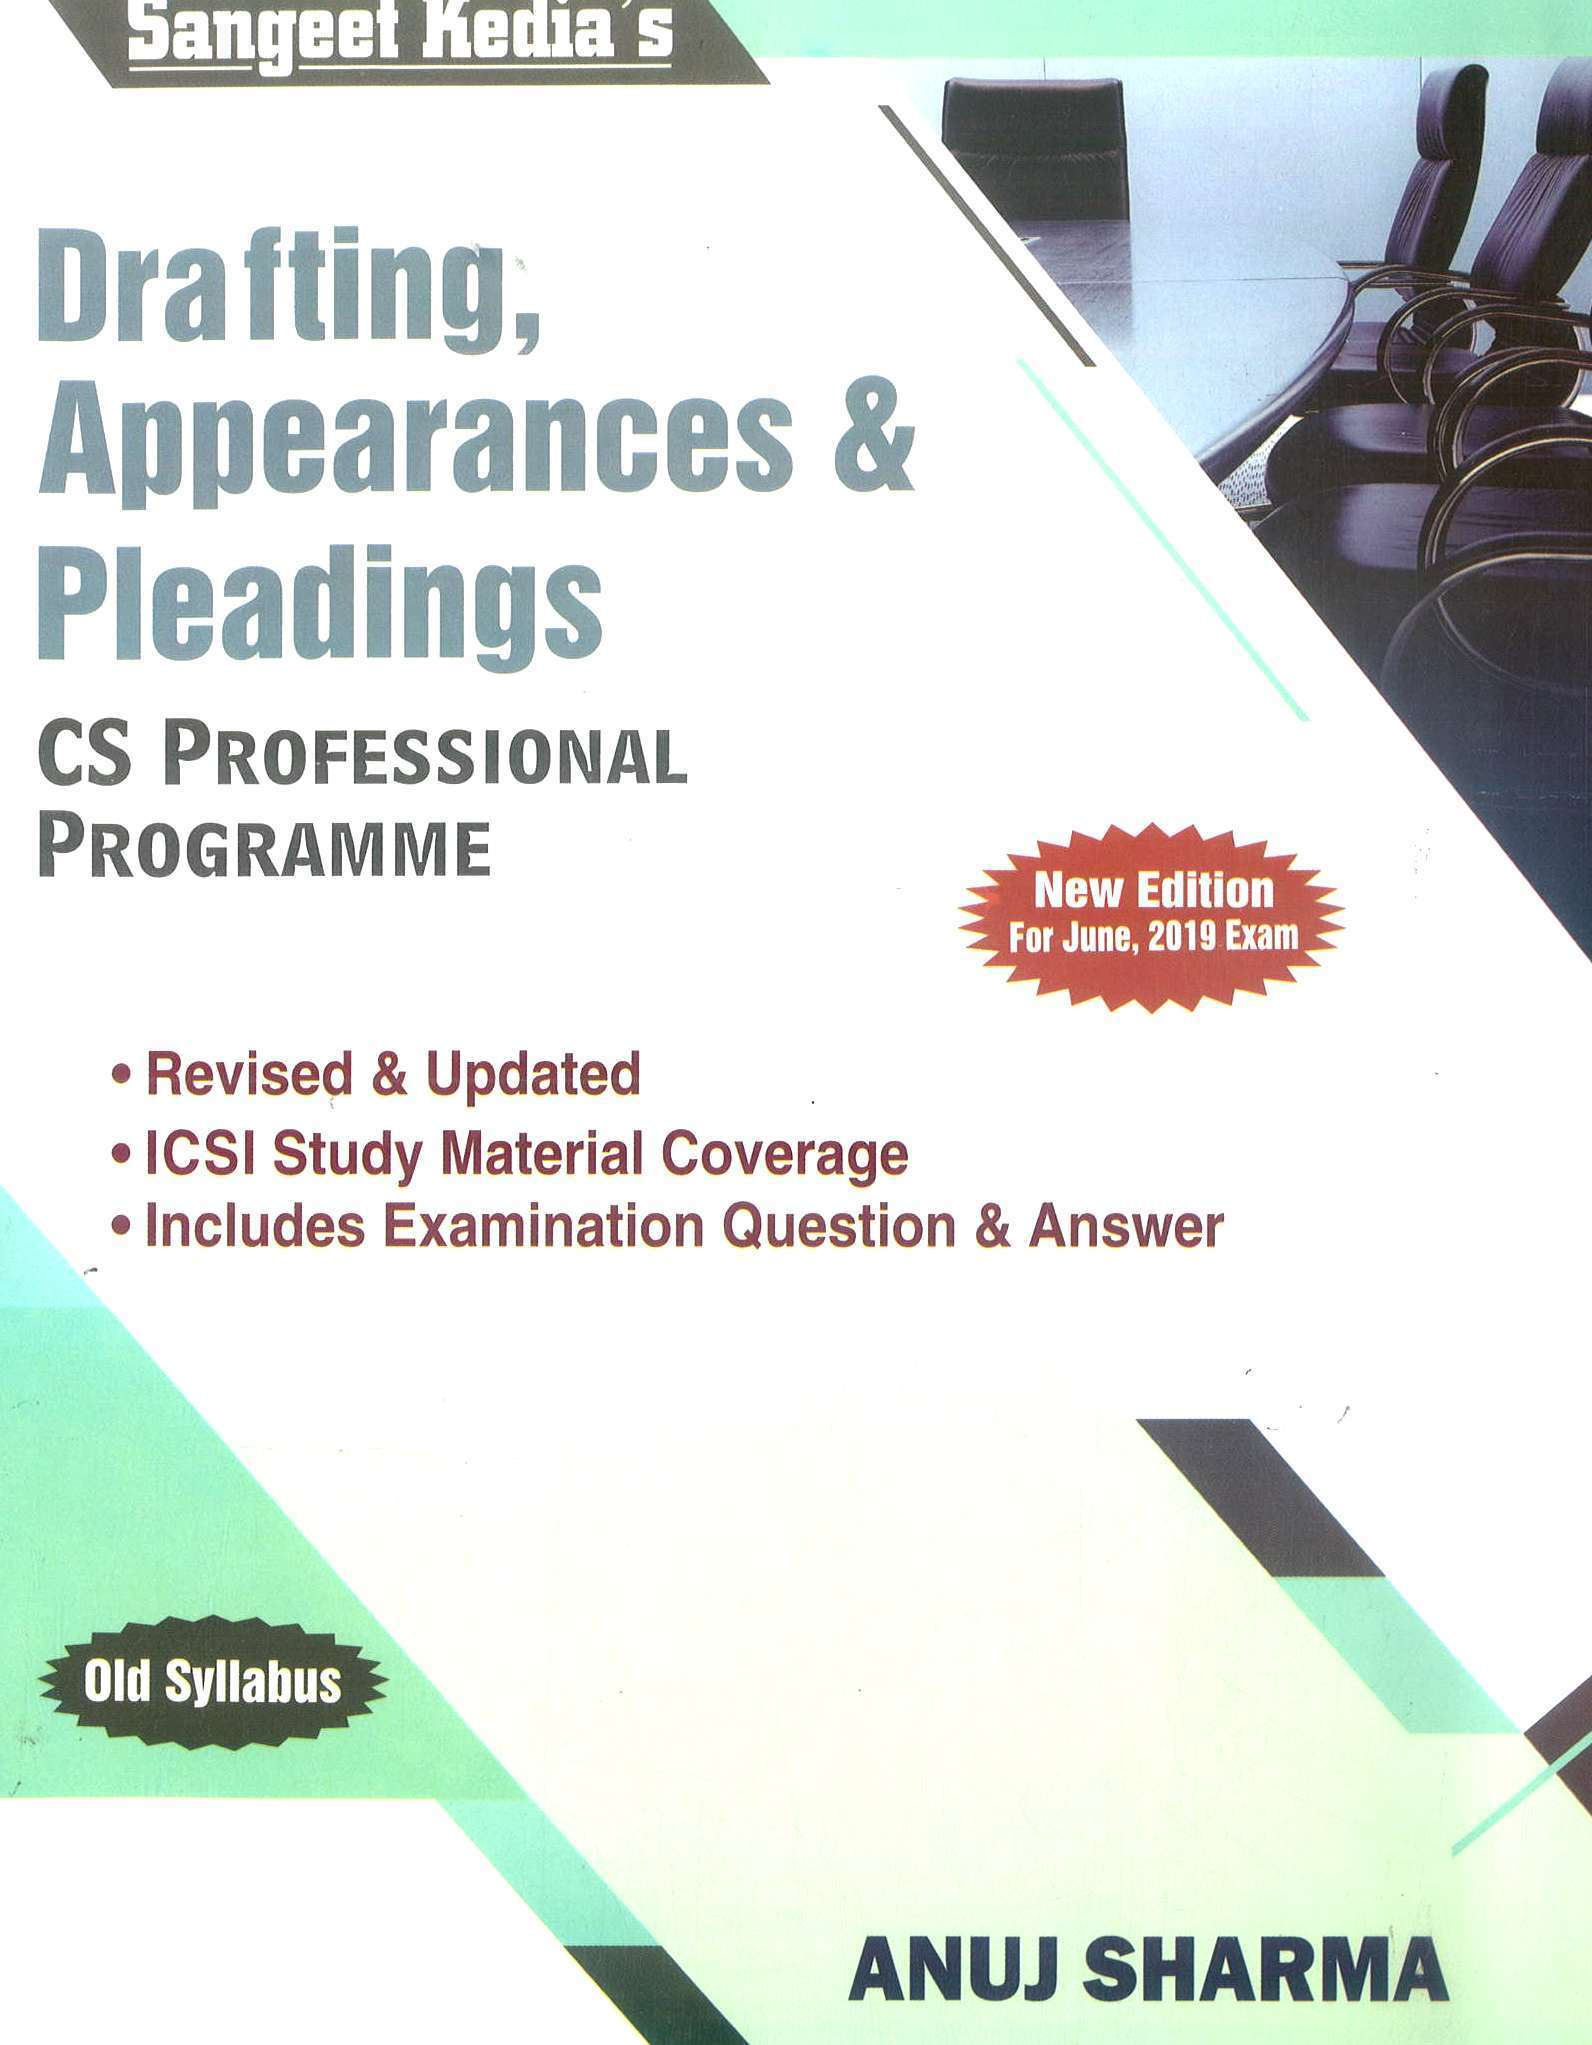 Pooja Law House Sangeet Kedia CS Professional Drafting Appearance & Pleadings New Syllabus By Anuj Sharma Applicable for June 2019 Exam